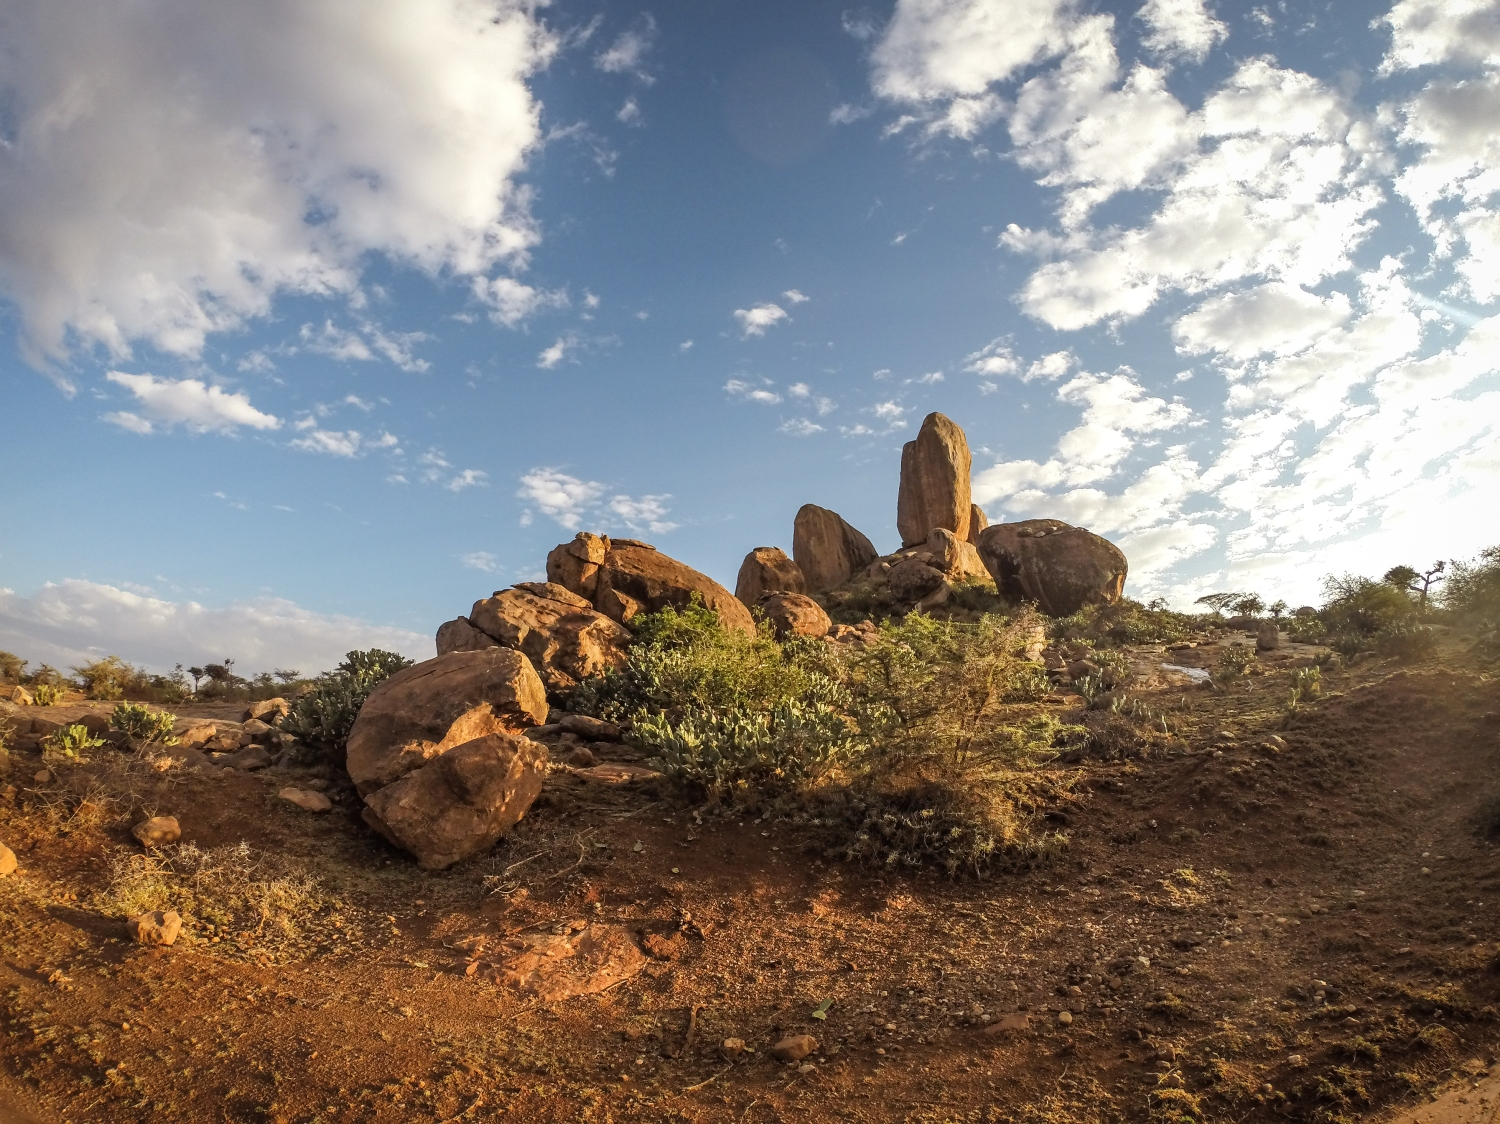 Massive landmark in Northern Laikipia, Kenya